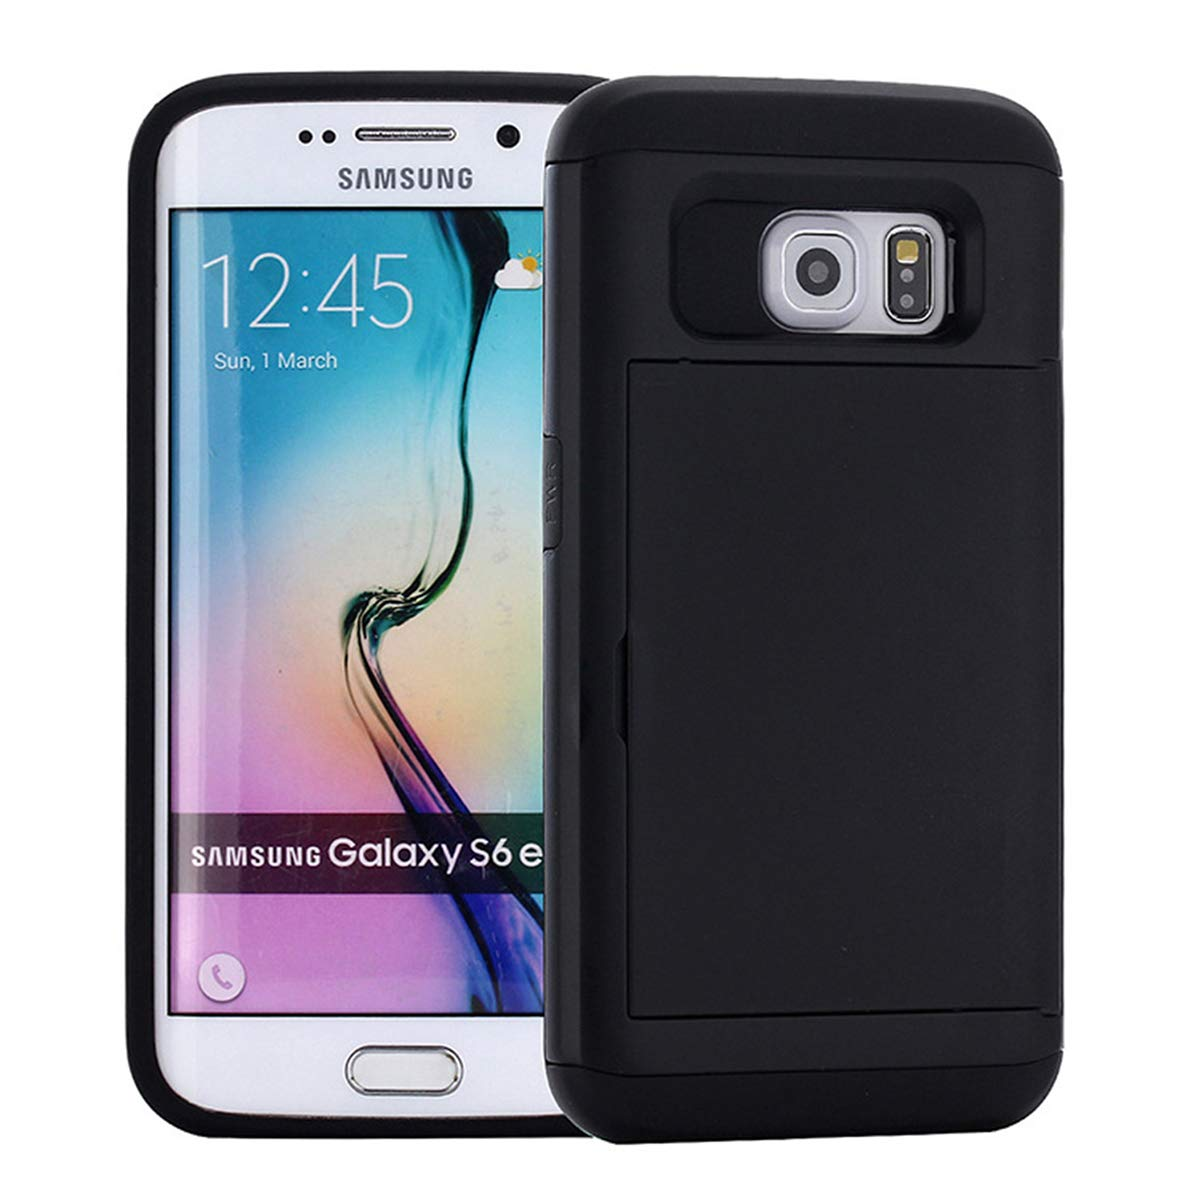 Ldea Case for Galaxy S8 Case, Wallet Card Holder Slot Sliding Cover ID Pocket Anti-Scratch Protective case for Galaxy S8 5.8 inch (Black) by Ldea